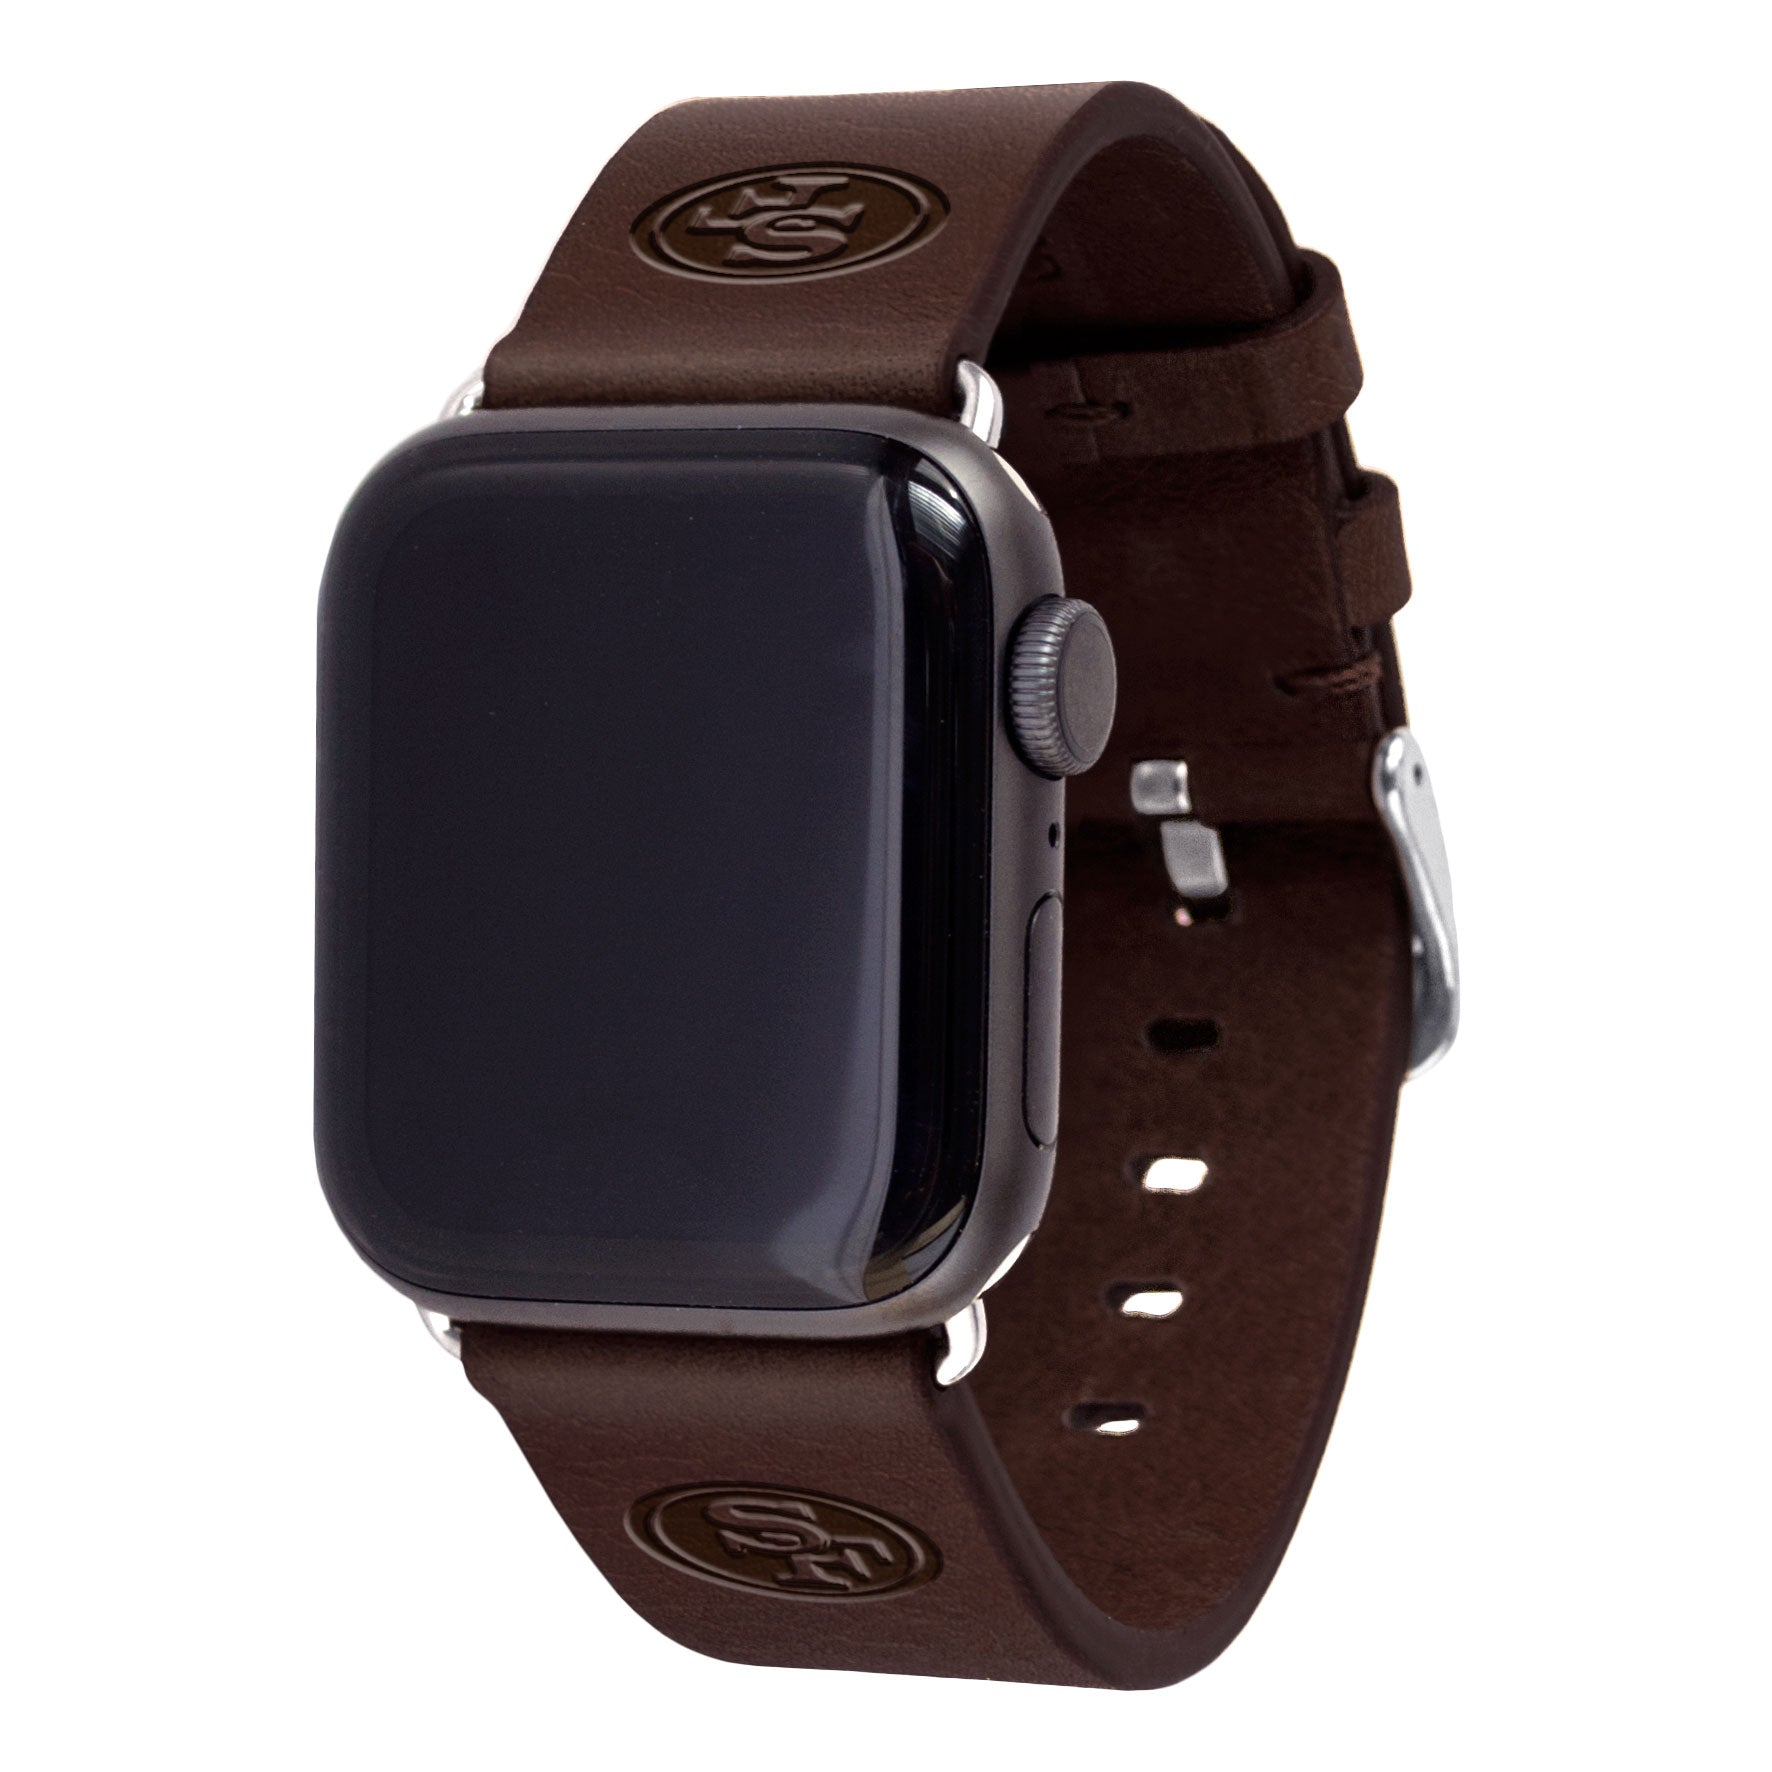 San Francisco 49ers Leather Apple Watch Band - AffinityBands